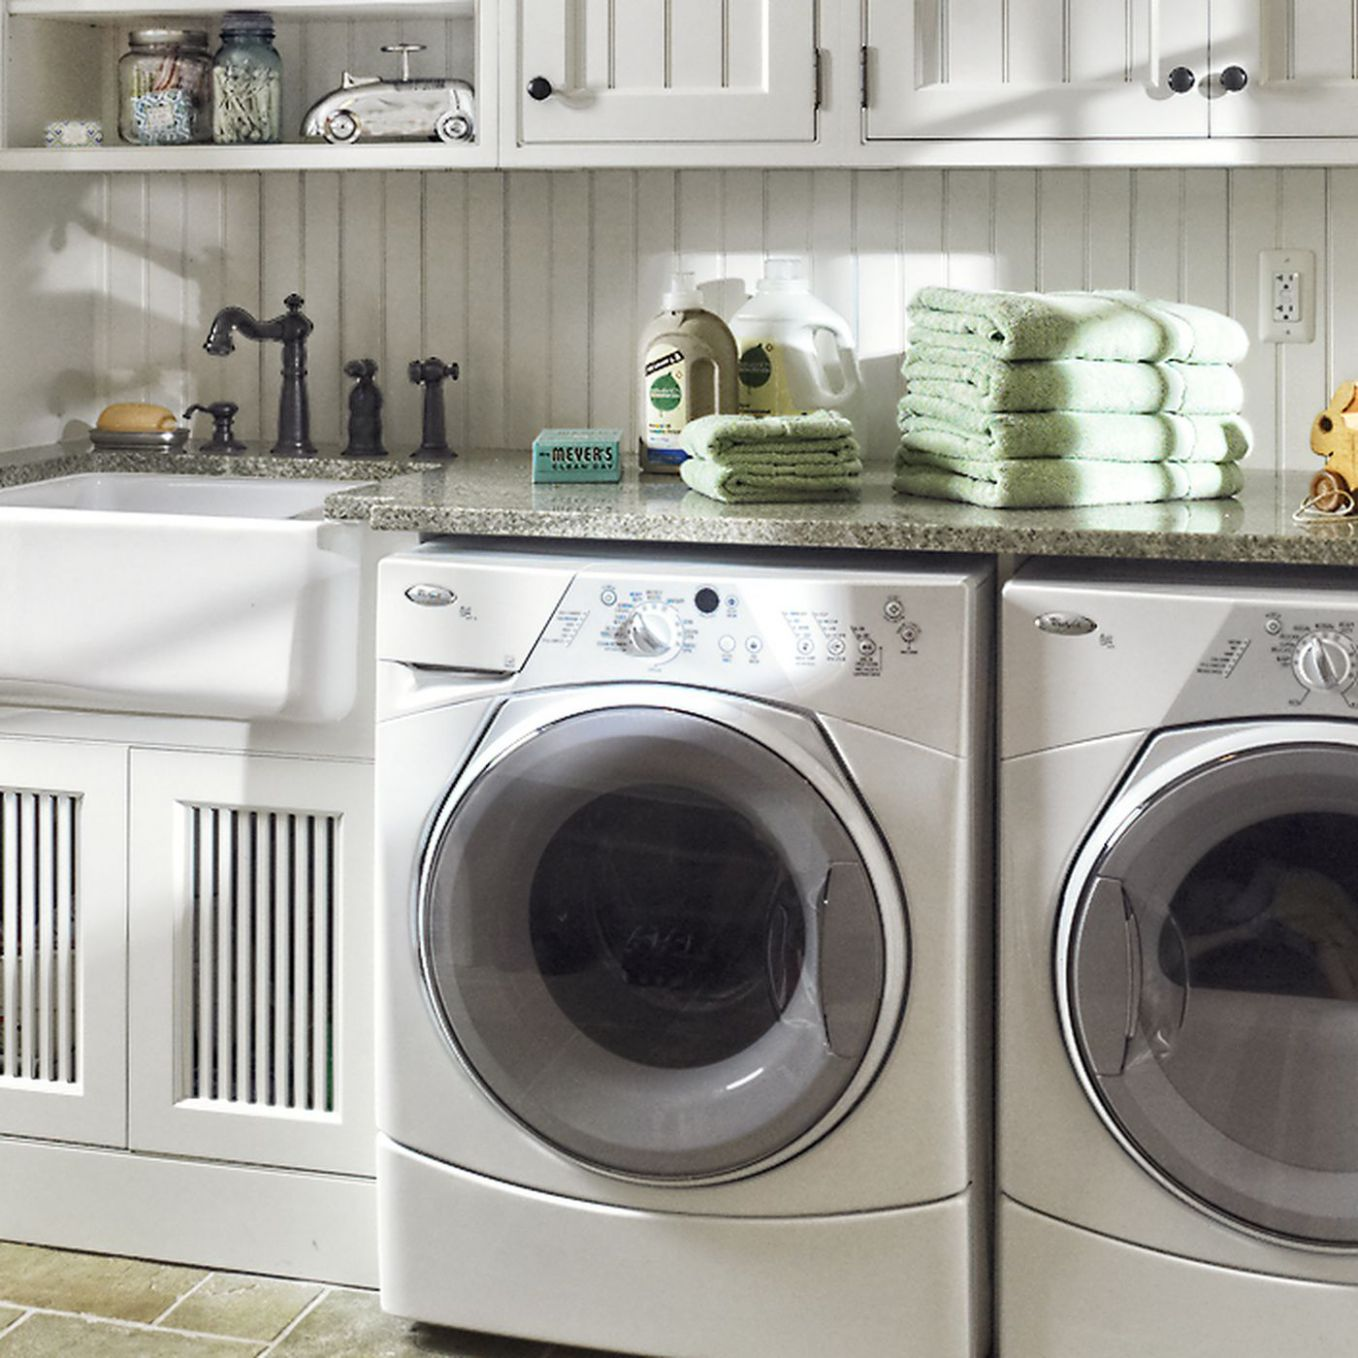 Read This Before You Redo Your Laundry Room - This Old House - laundry room ideas this old house